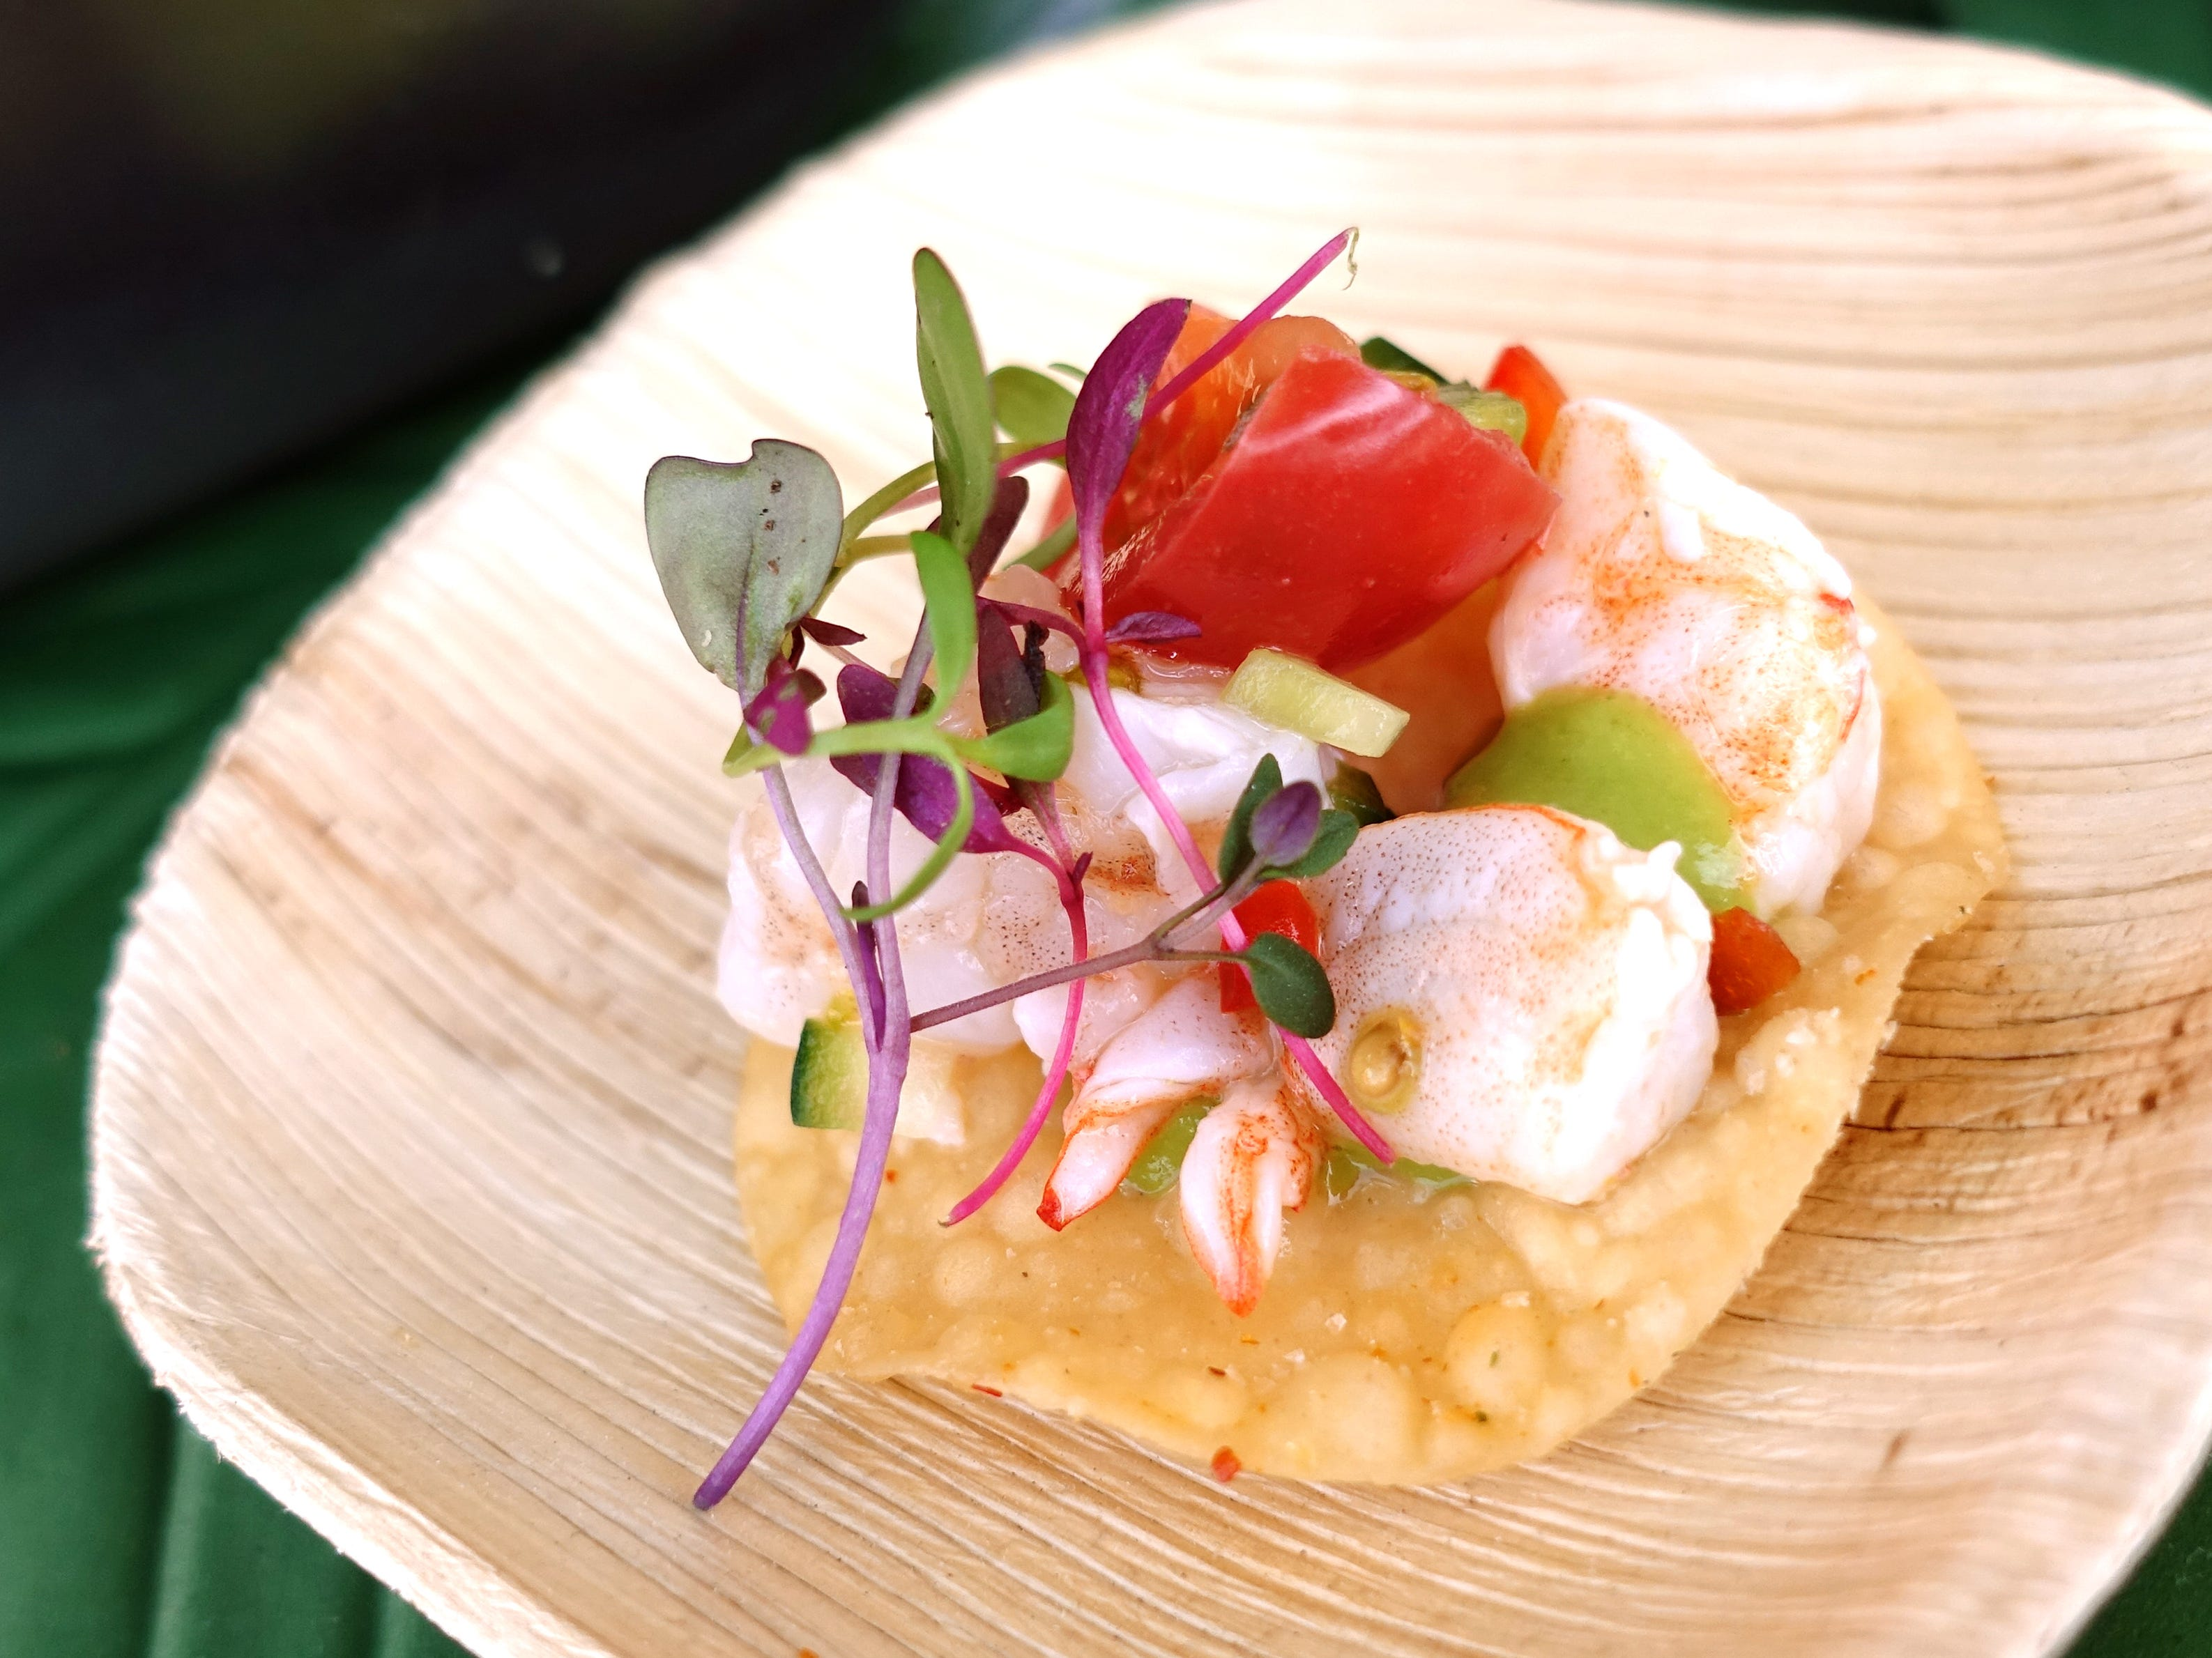 Shrimp ceviche with yuzu marinade, avocado puree, wonton chip, heirloom tomato and lime zest from Across The Pond at the 2019 Devour Culinary Classic at the Desert Botanical Garden in Phoenix.